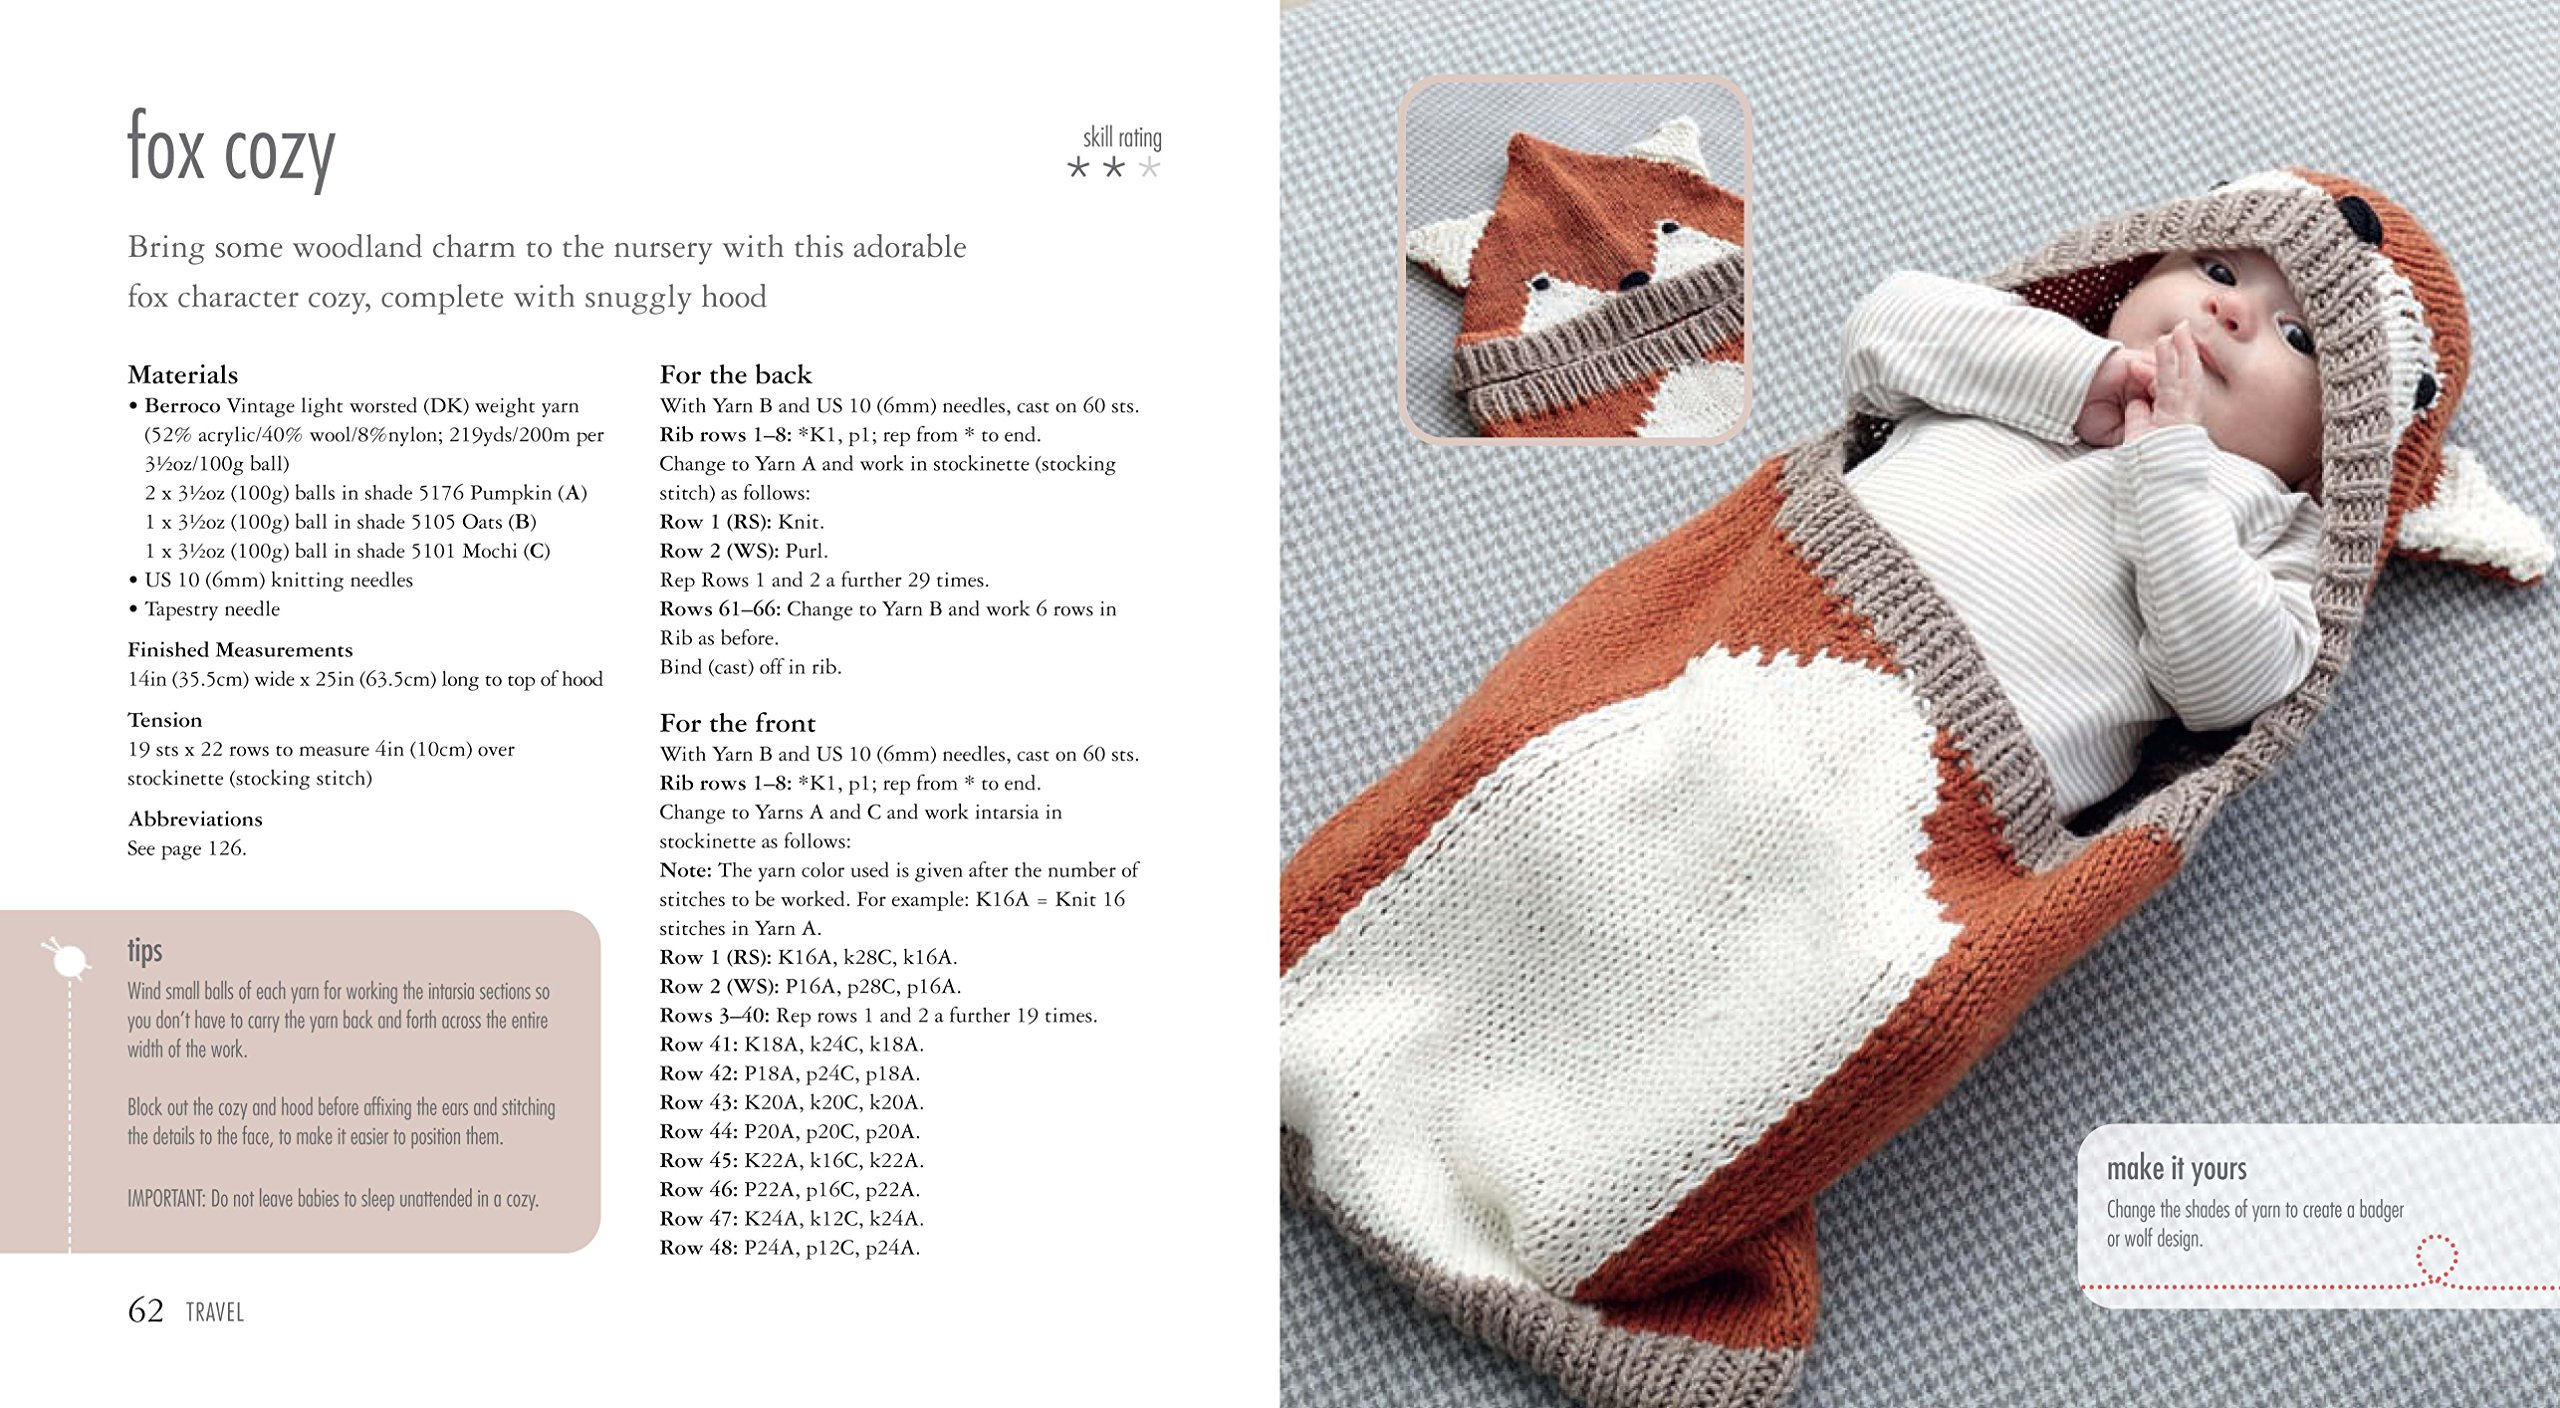 35 Knitted Baby Blankets: For the nursery, stroller, and playtime ...